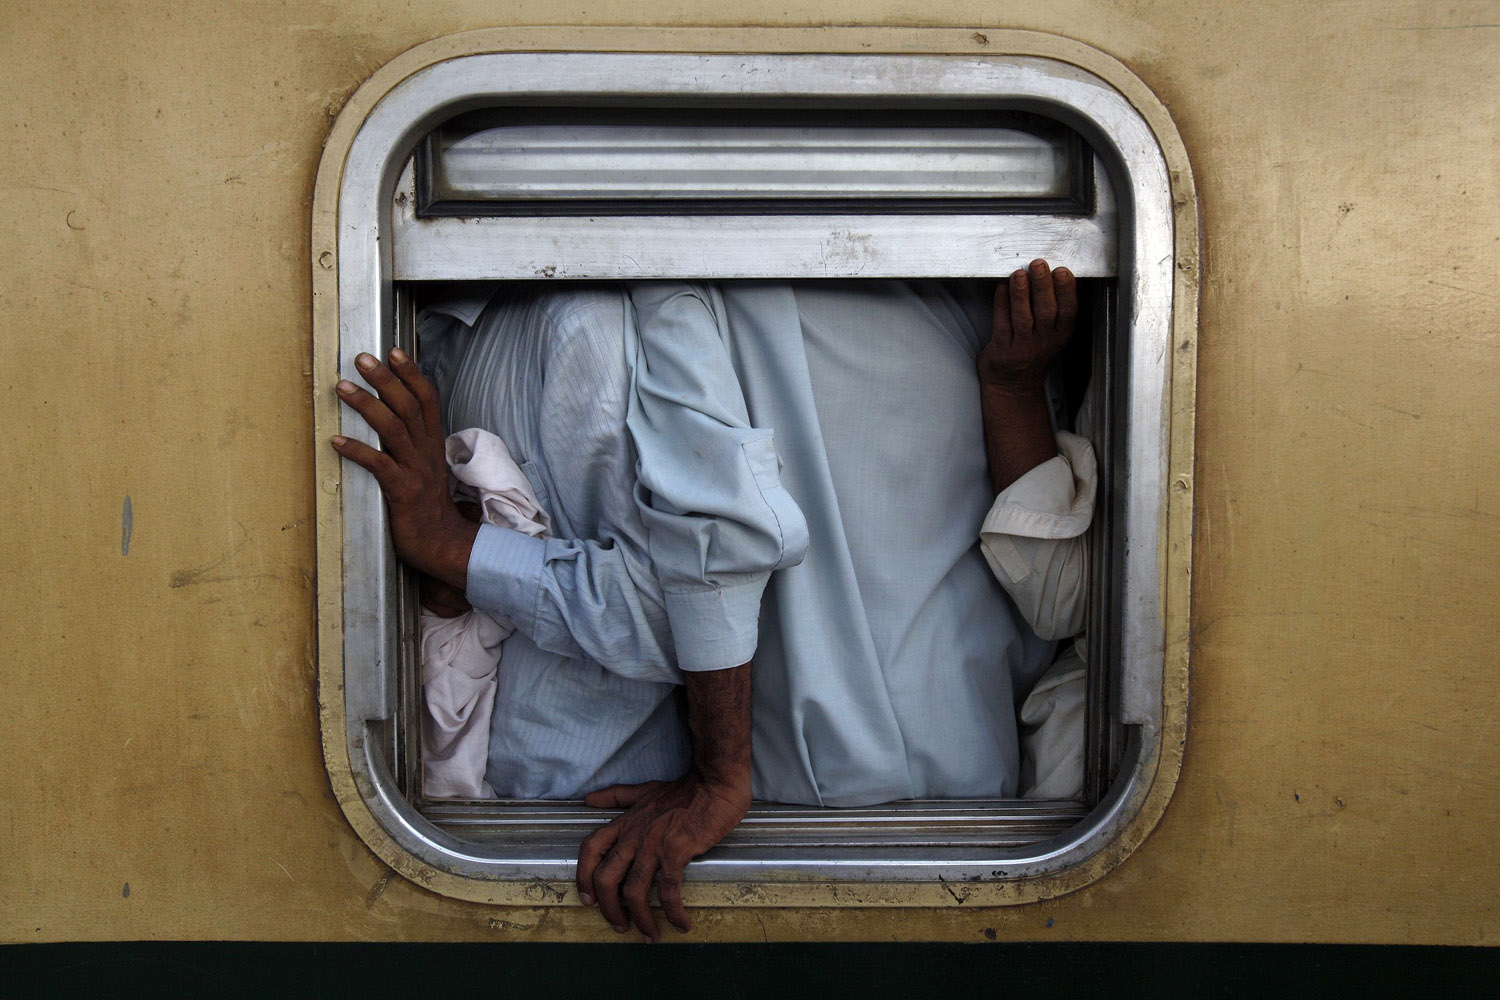 Jul. 27, 2014. Men are seen at the window of a train as they make their way home, ahead of the Eid al-Fitr festival, at Karachi's Cantonment railway station.